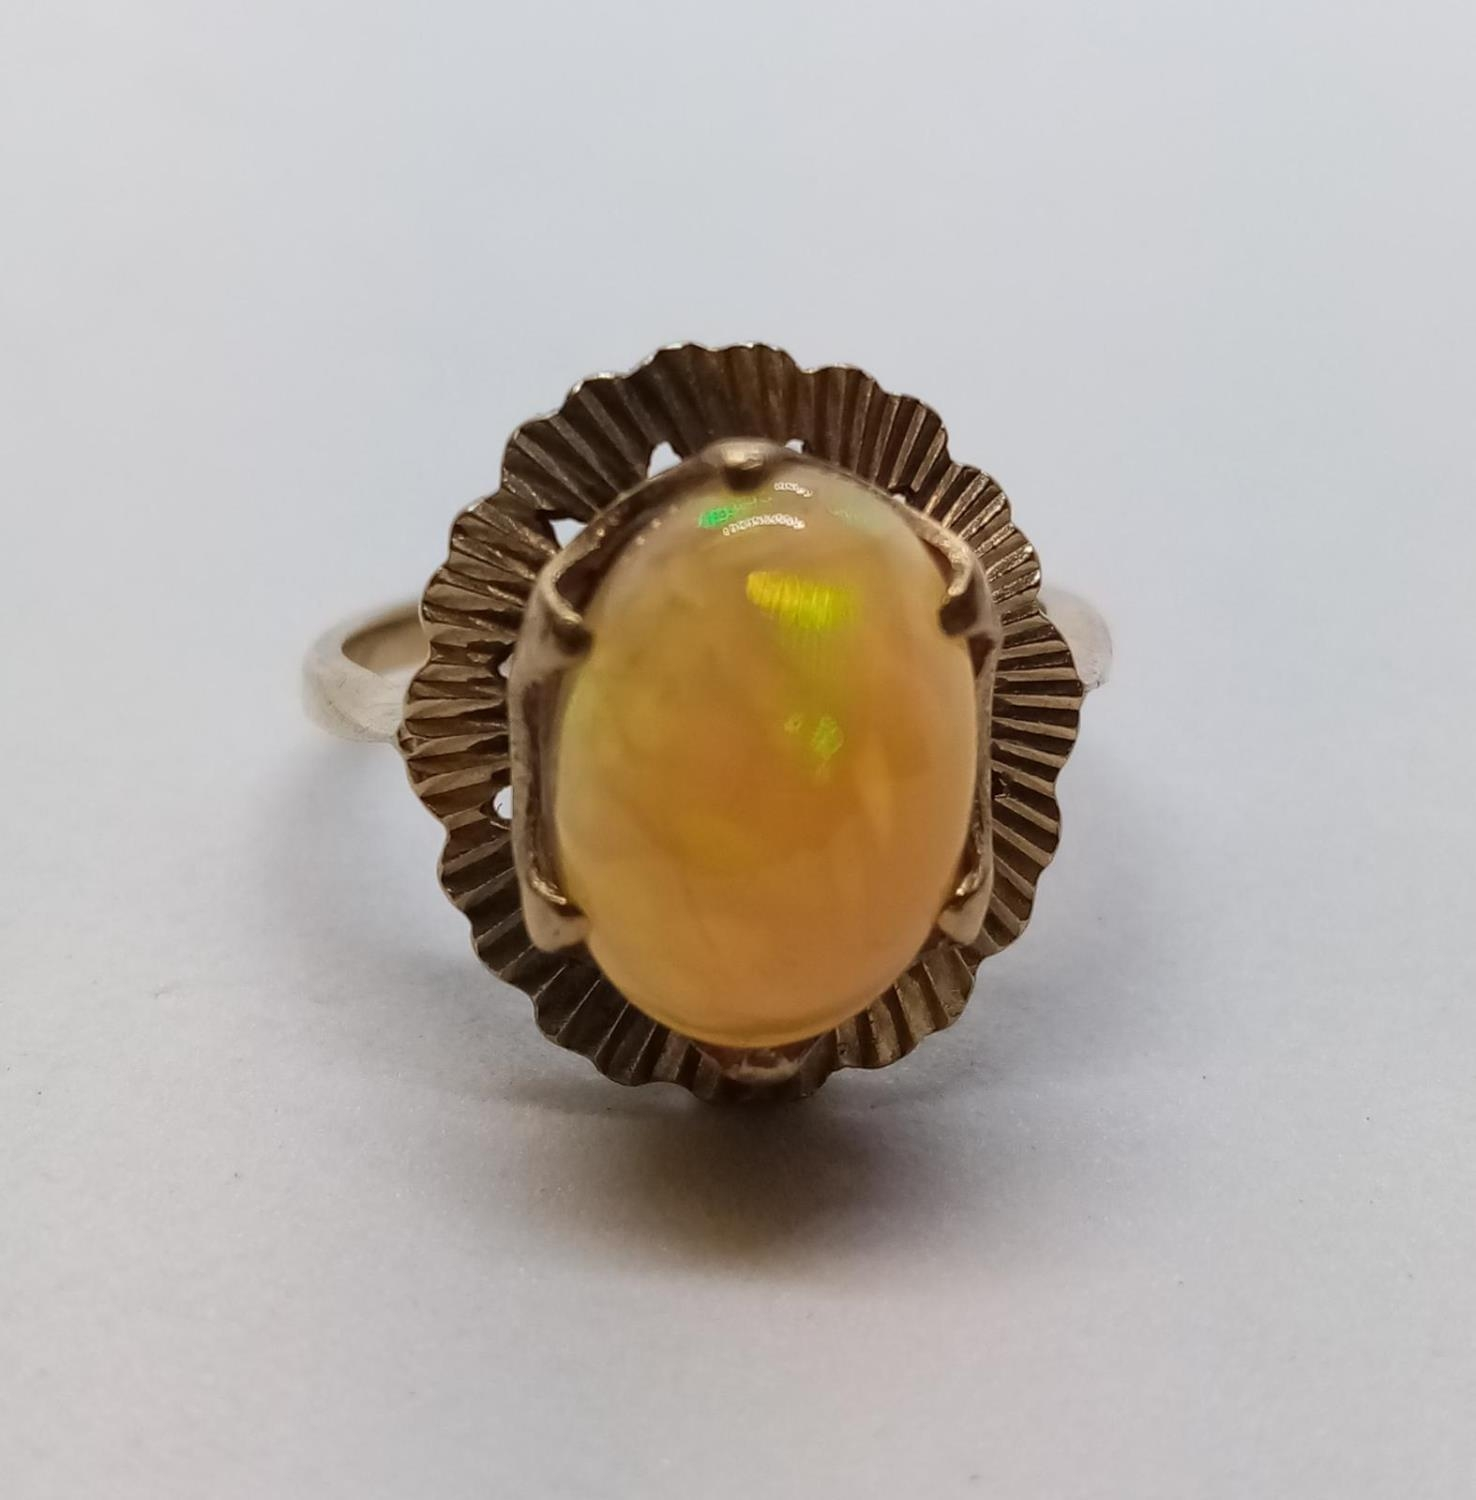 Fine Opal set in 9 cg Gold RING. 3.0g Size M. - Image 2 of 6